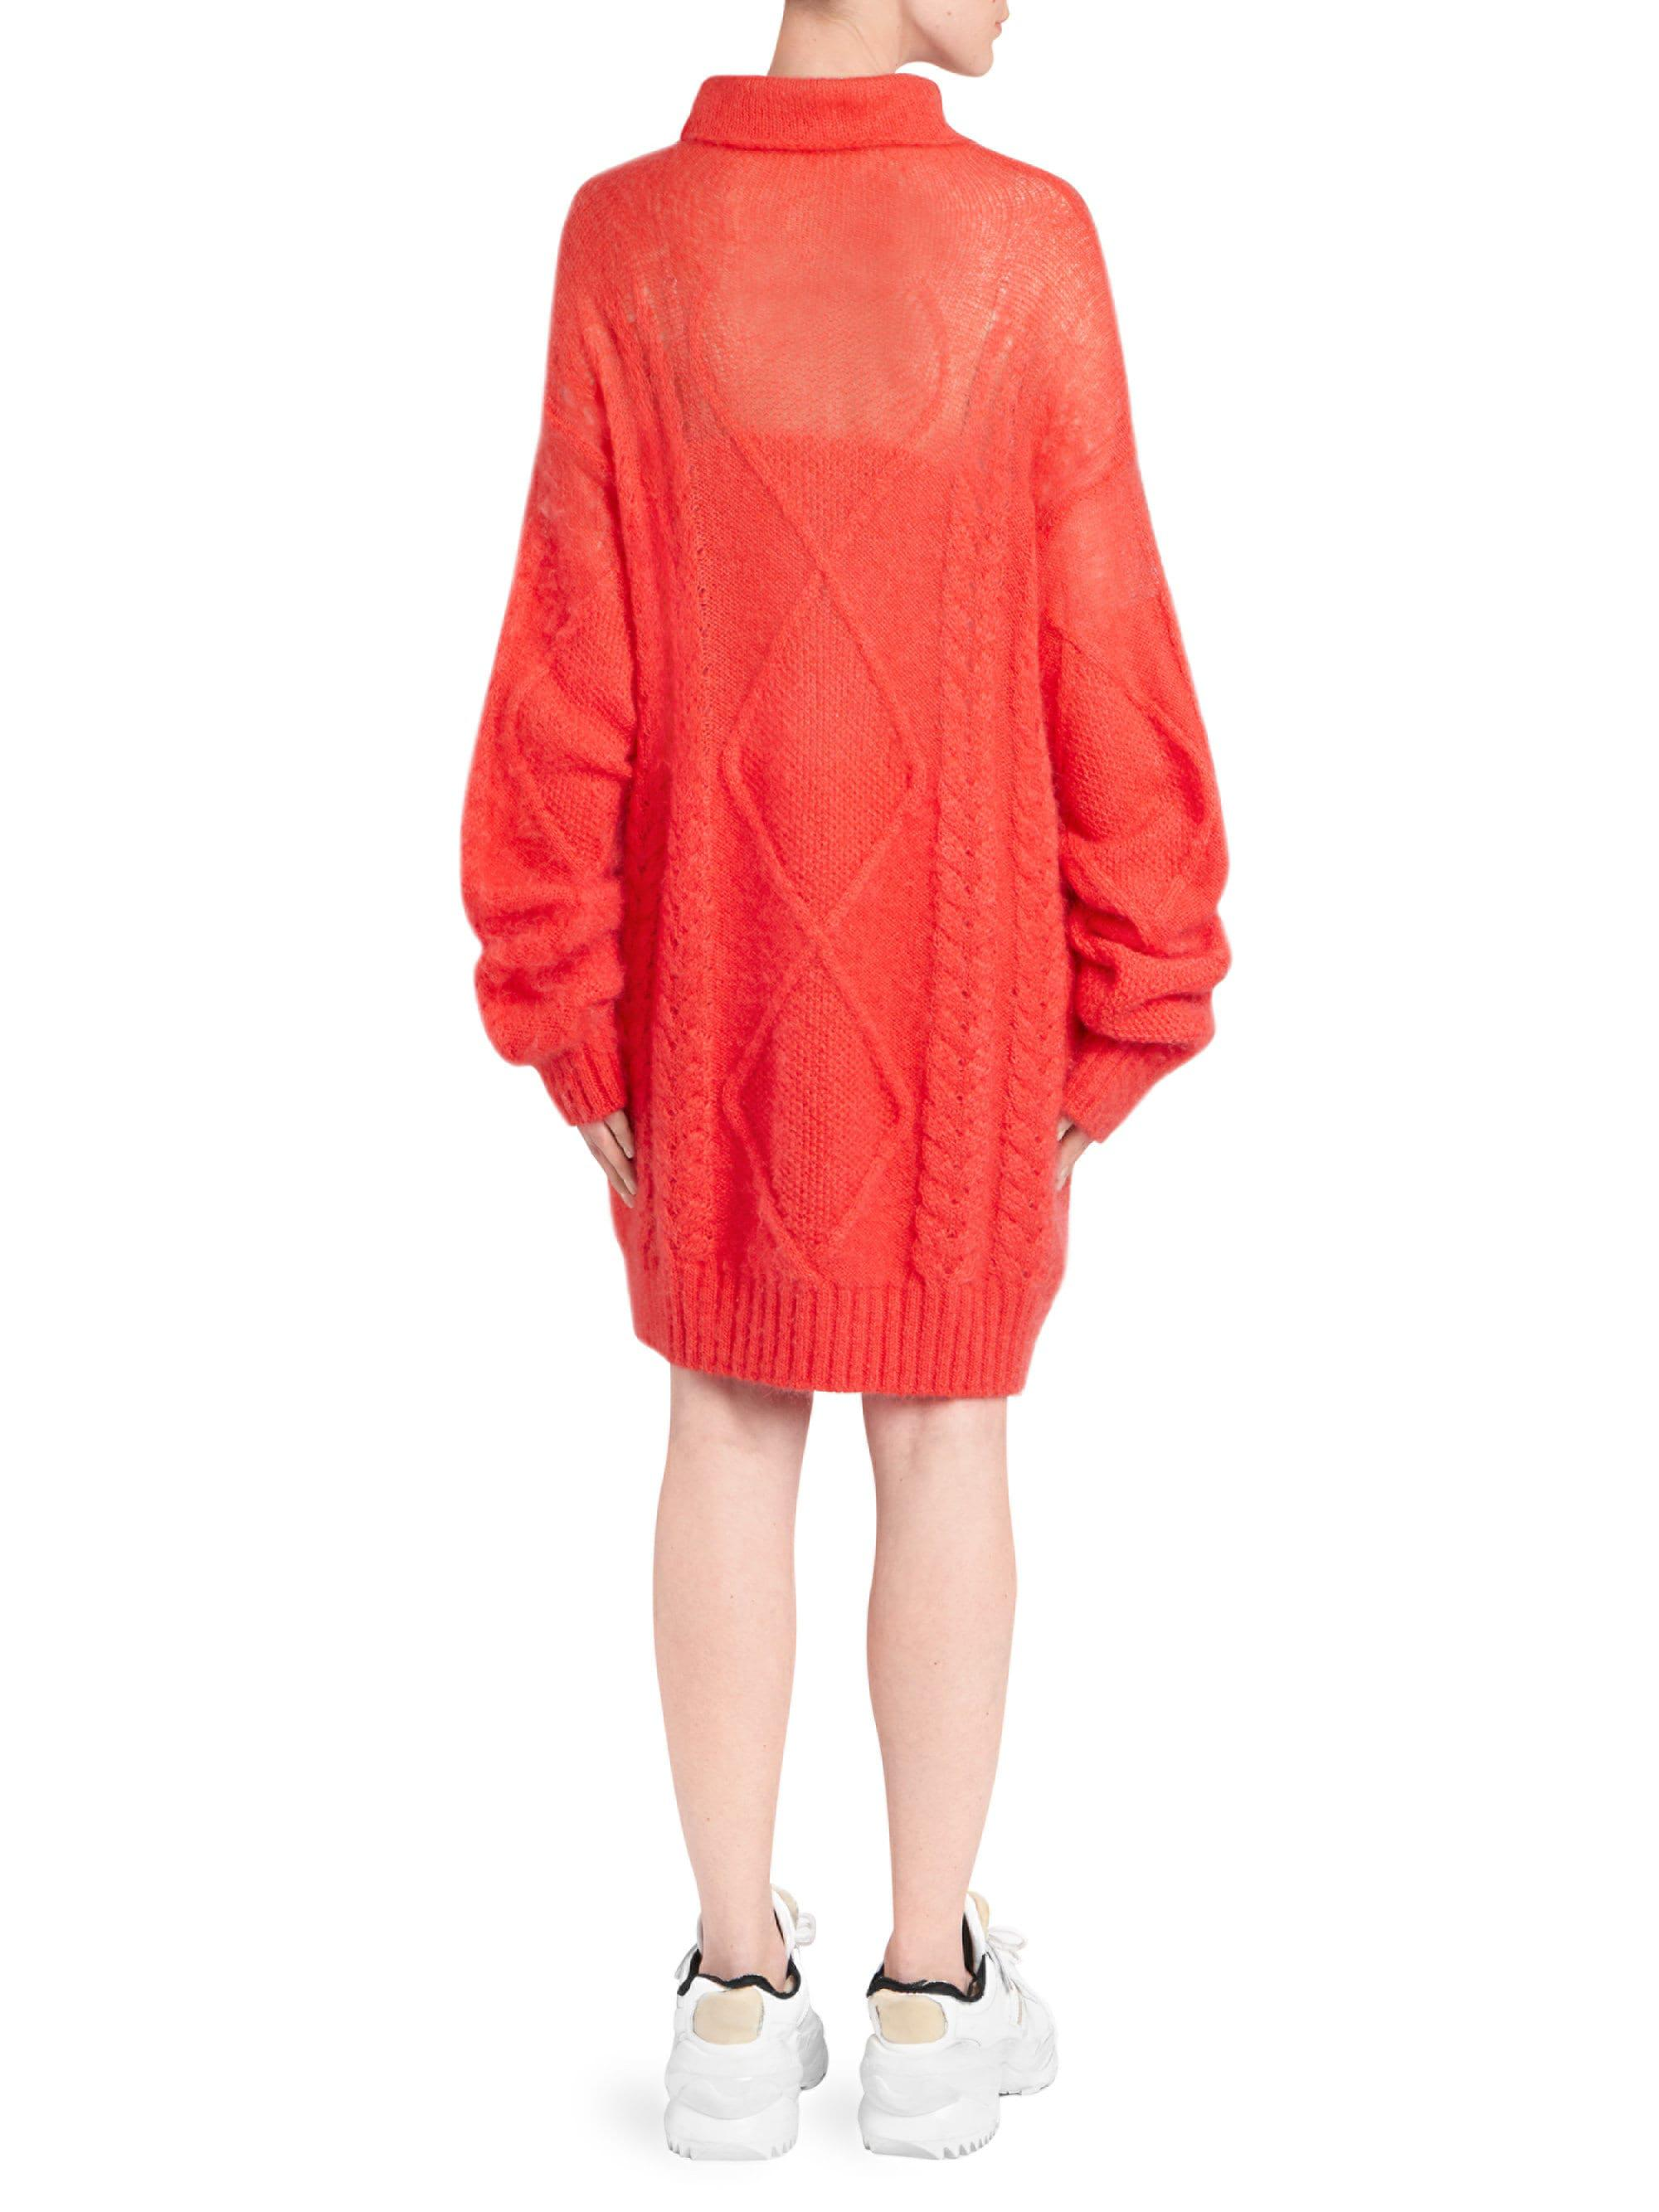 a1af7339646 Maison Margiela Cable-knit Turtleneck Sweater Dress in Red - Lyst